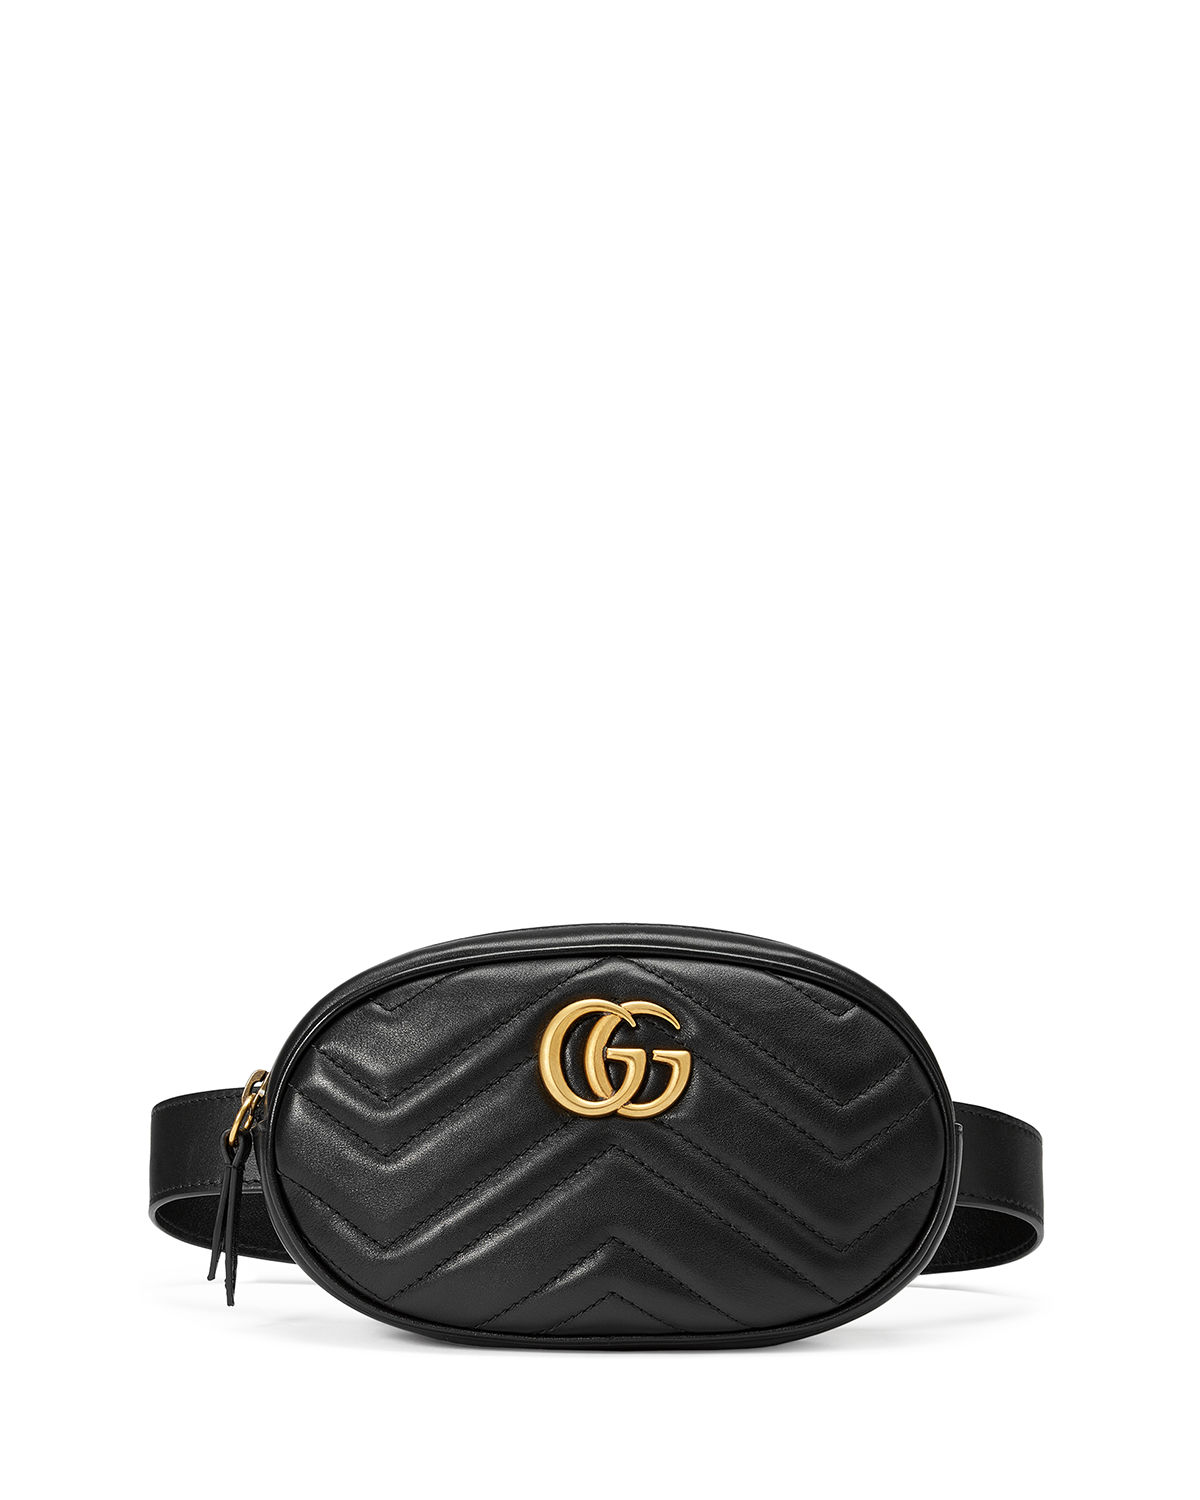 88b316156dc Gucci GG Marmont Small Matelasse Leather Belt Bag